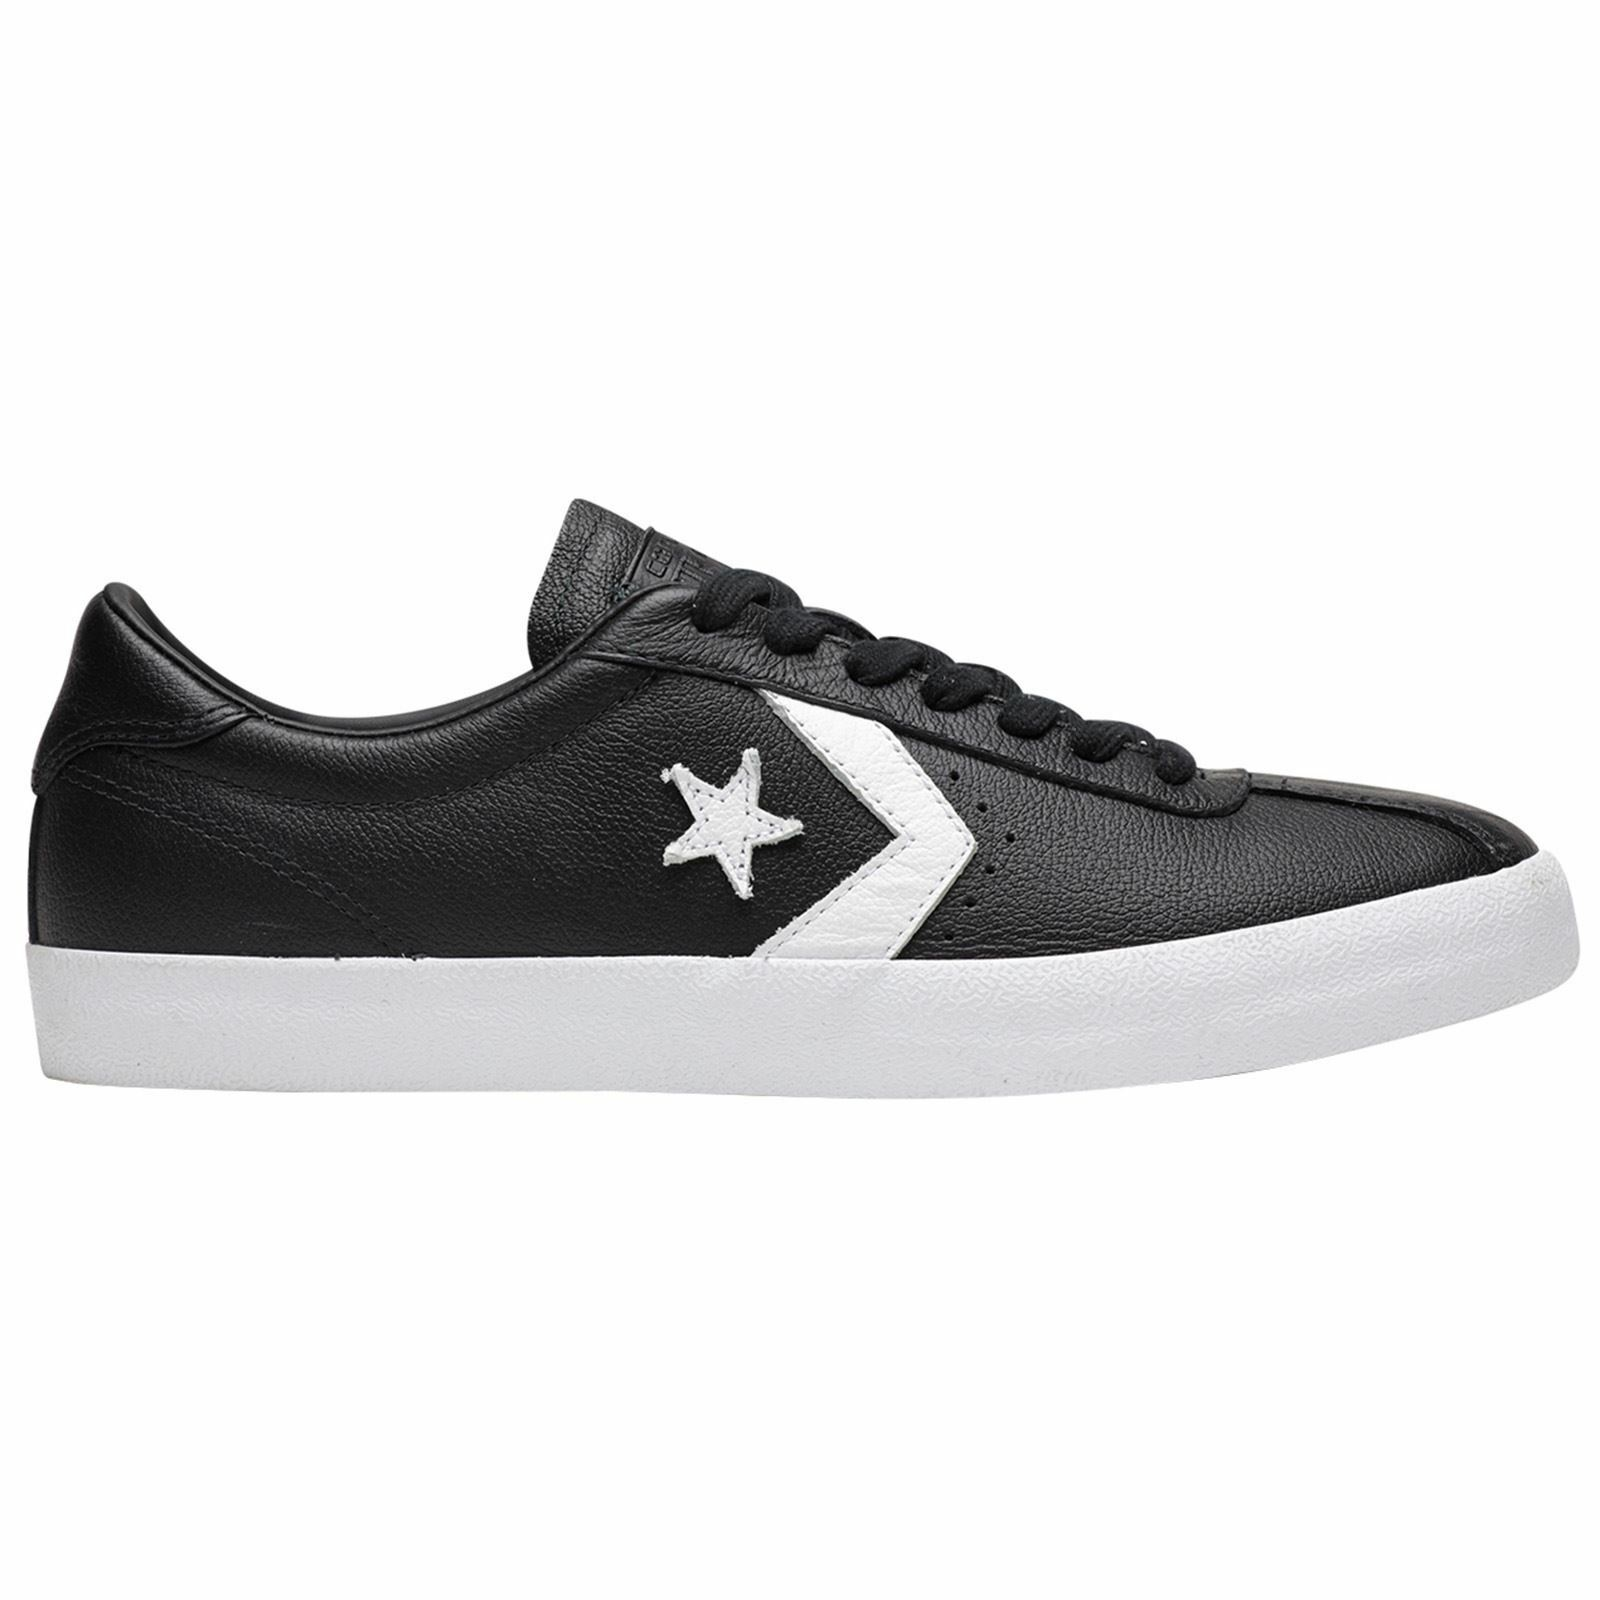 c87fa26ff42a2 Converse Breakpoint Ox Black White Mens Leather Retro Low-top Sneakers  Trainers for sale online